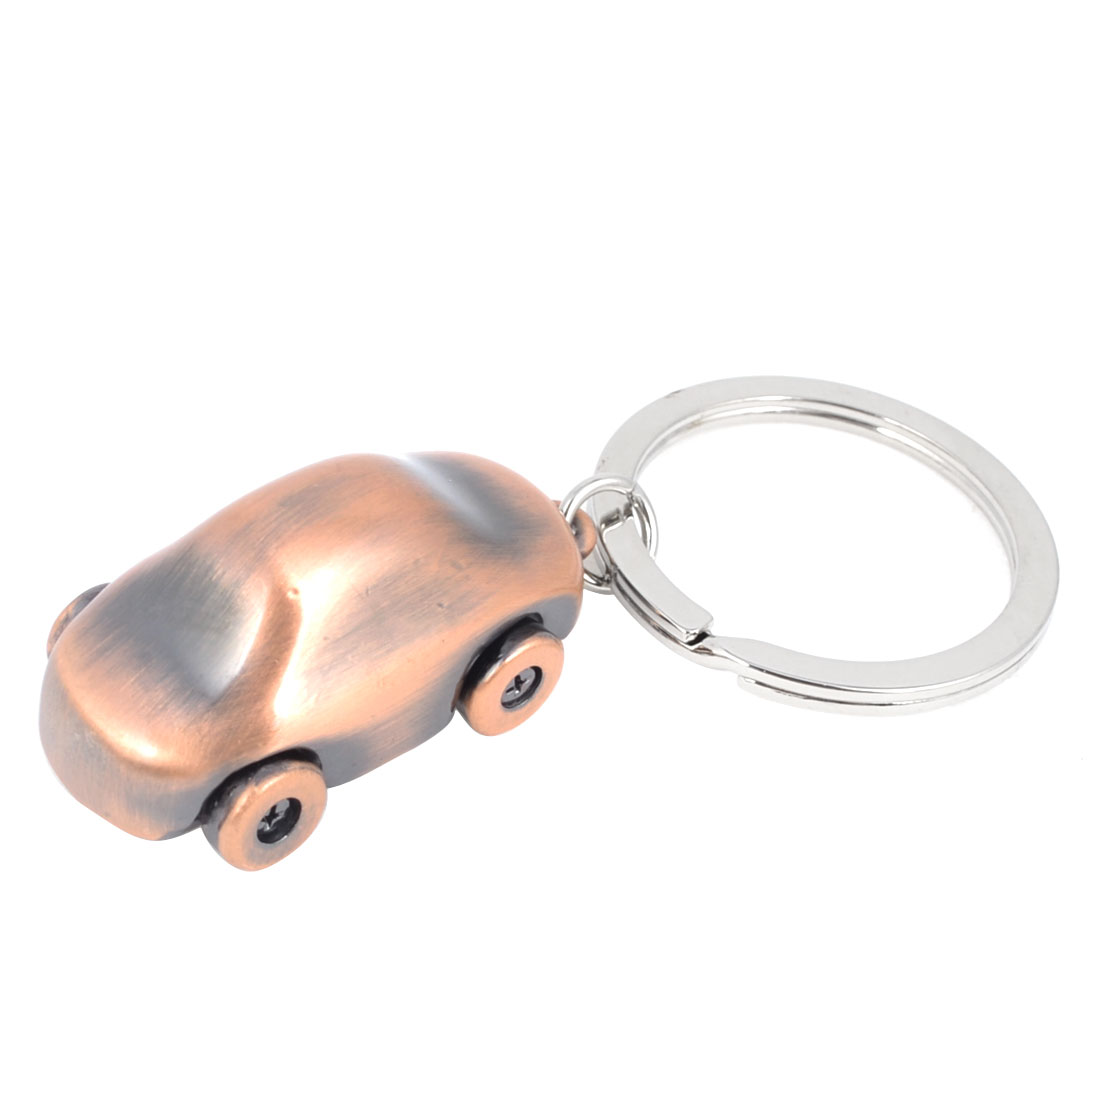 Copper Tone Car Shaped Pendant Keychain Keyring Hanging Ornament